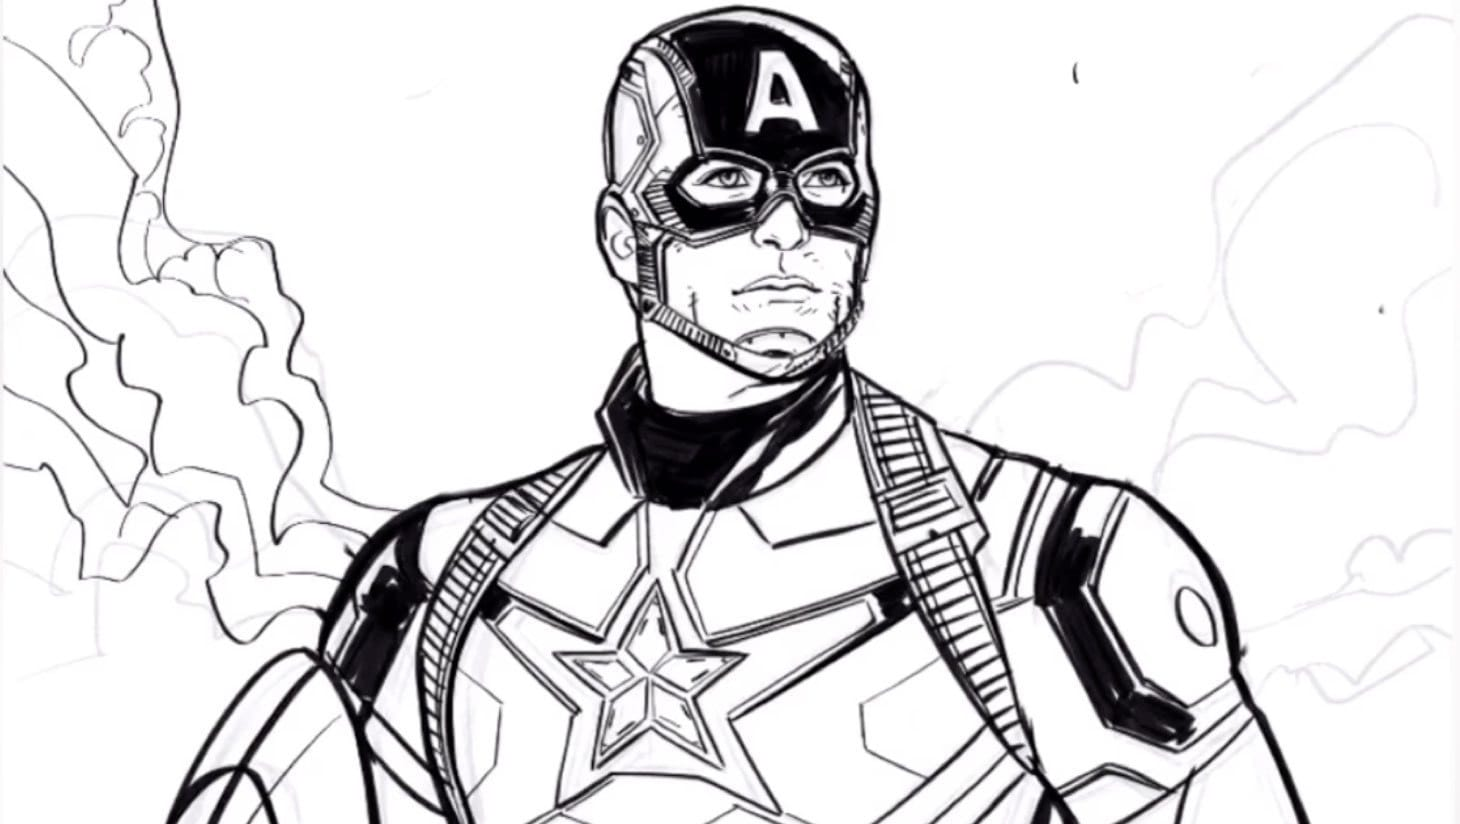 A sketch of Captain America